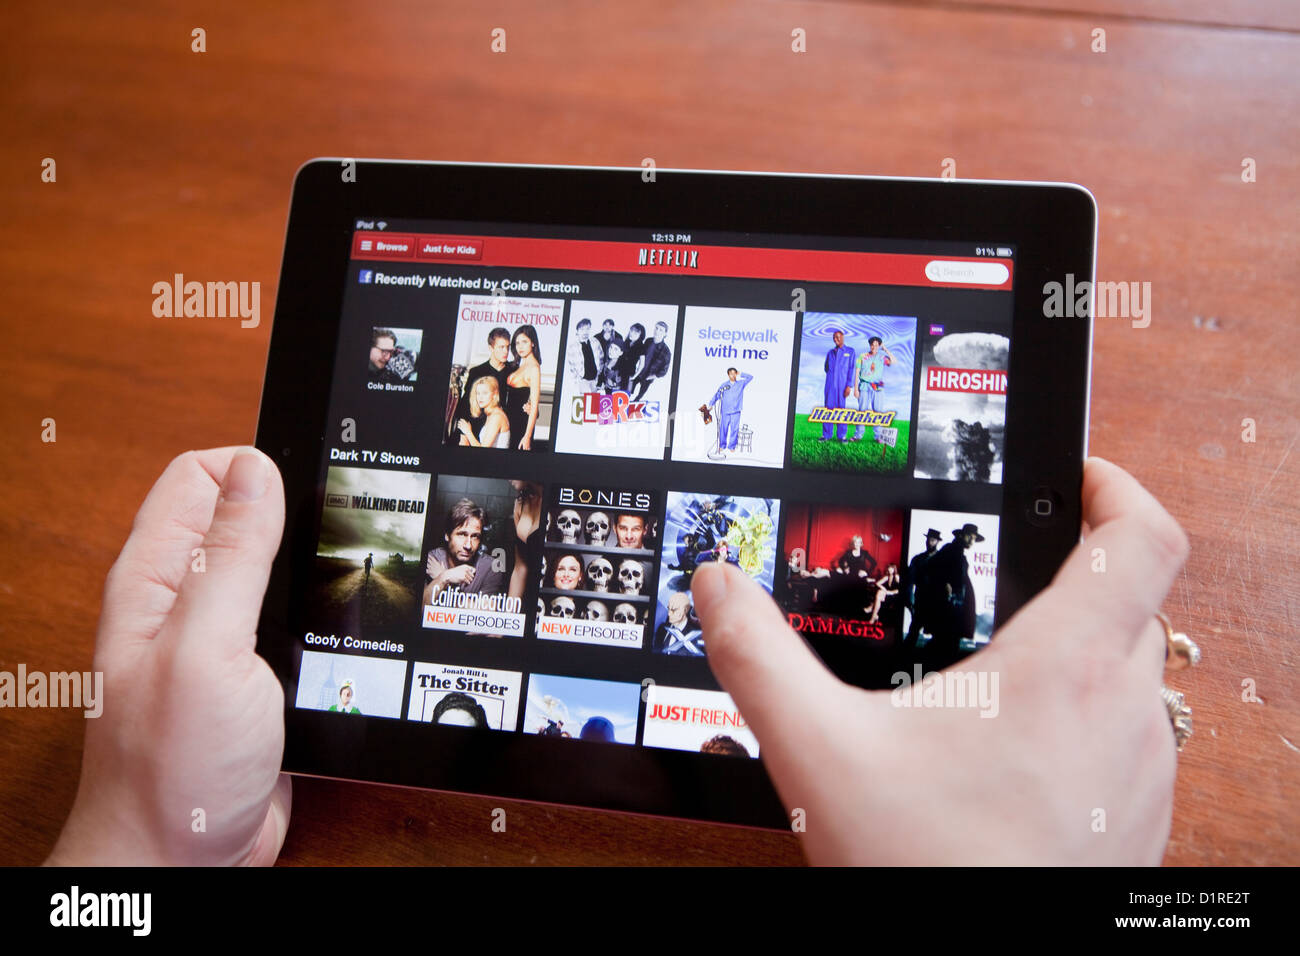 how to get american netflix on an ipad